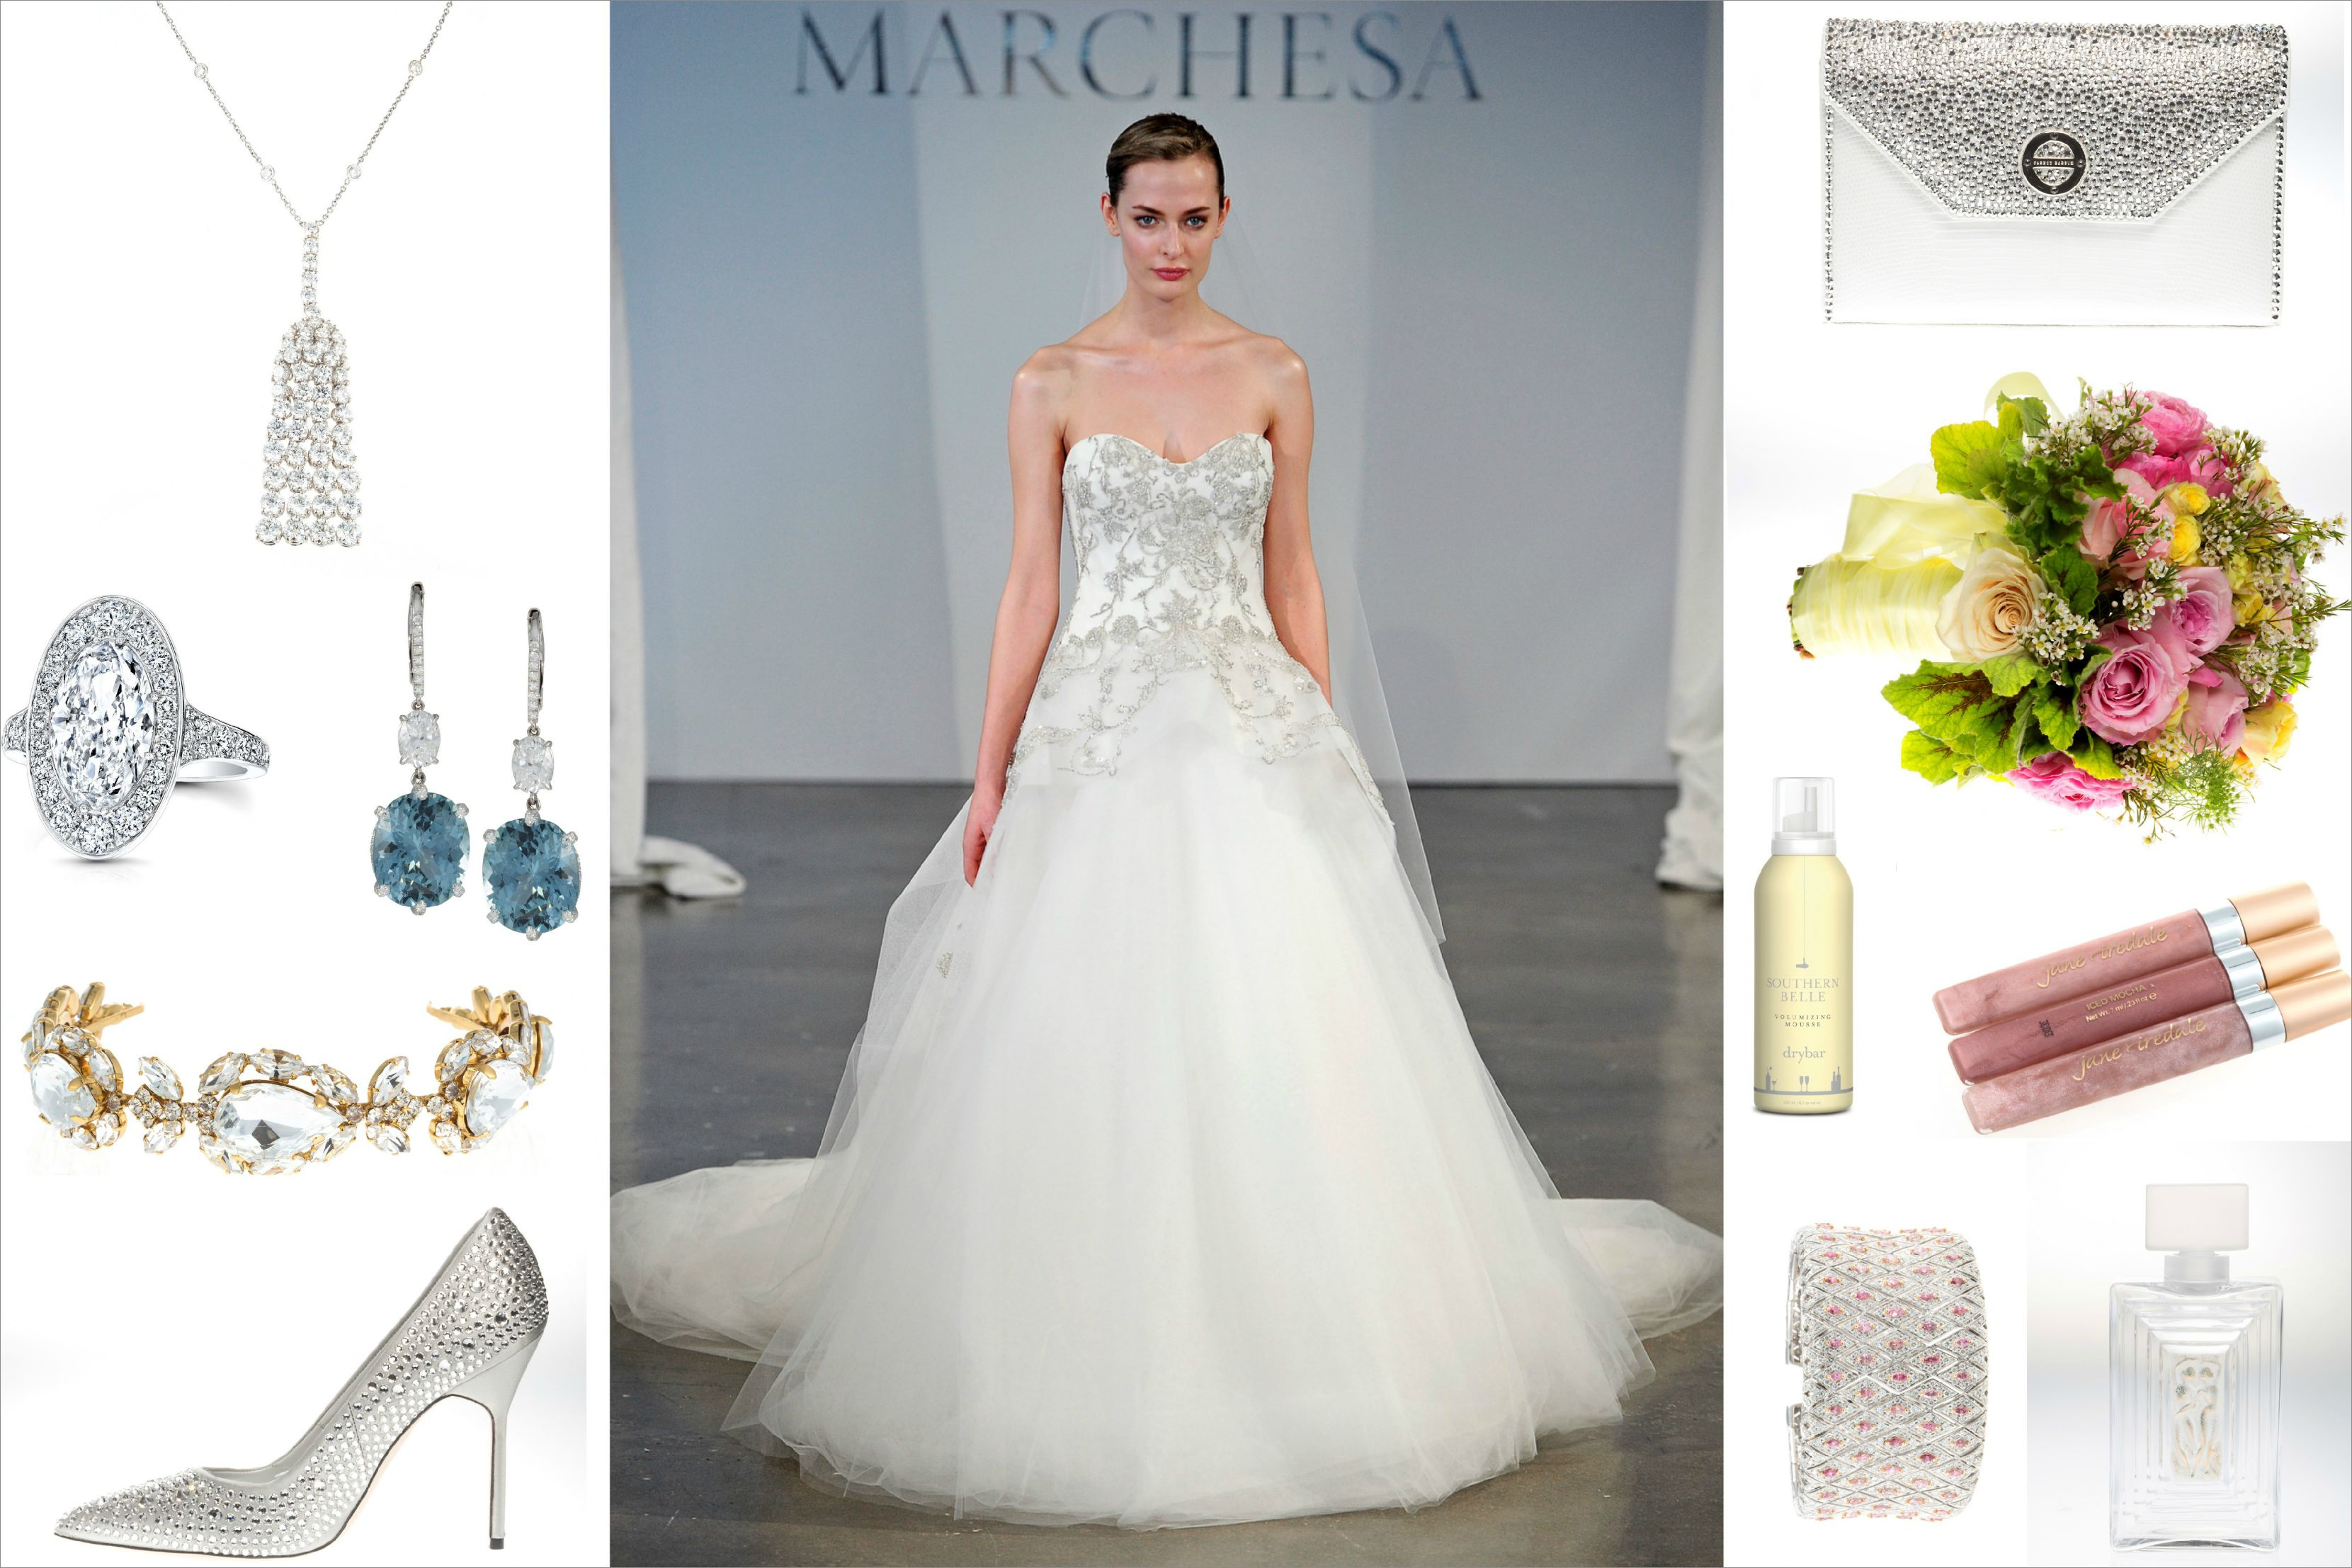 Blake Lively Wedding Dress.Get The Celebrity Wedding Look Blake Lively Ryan Reynolds